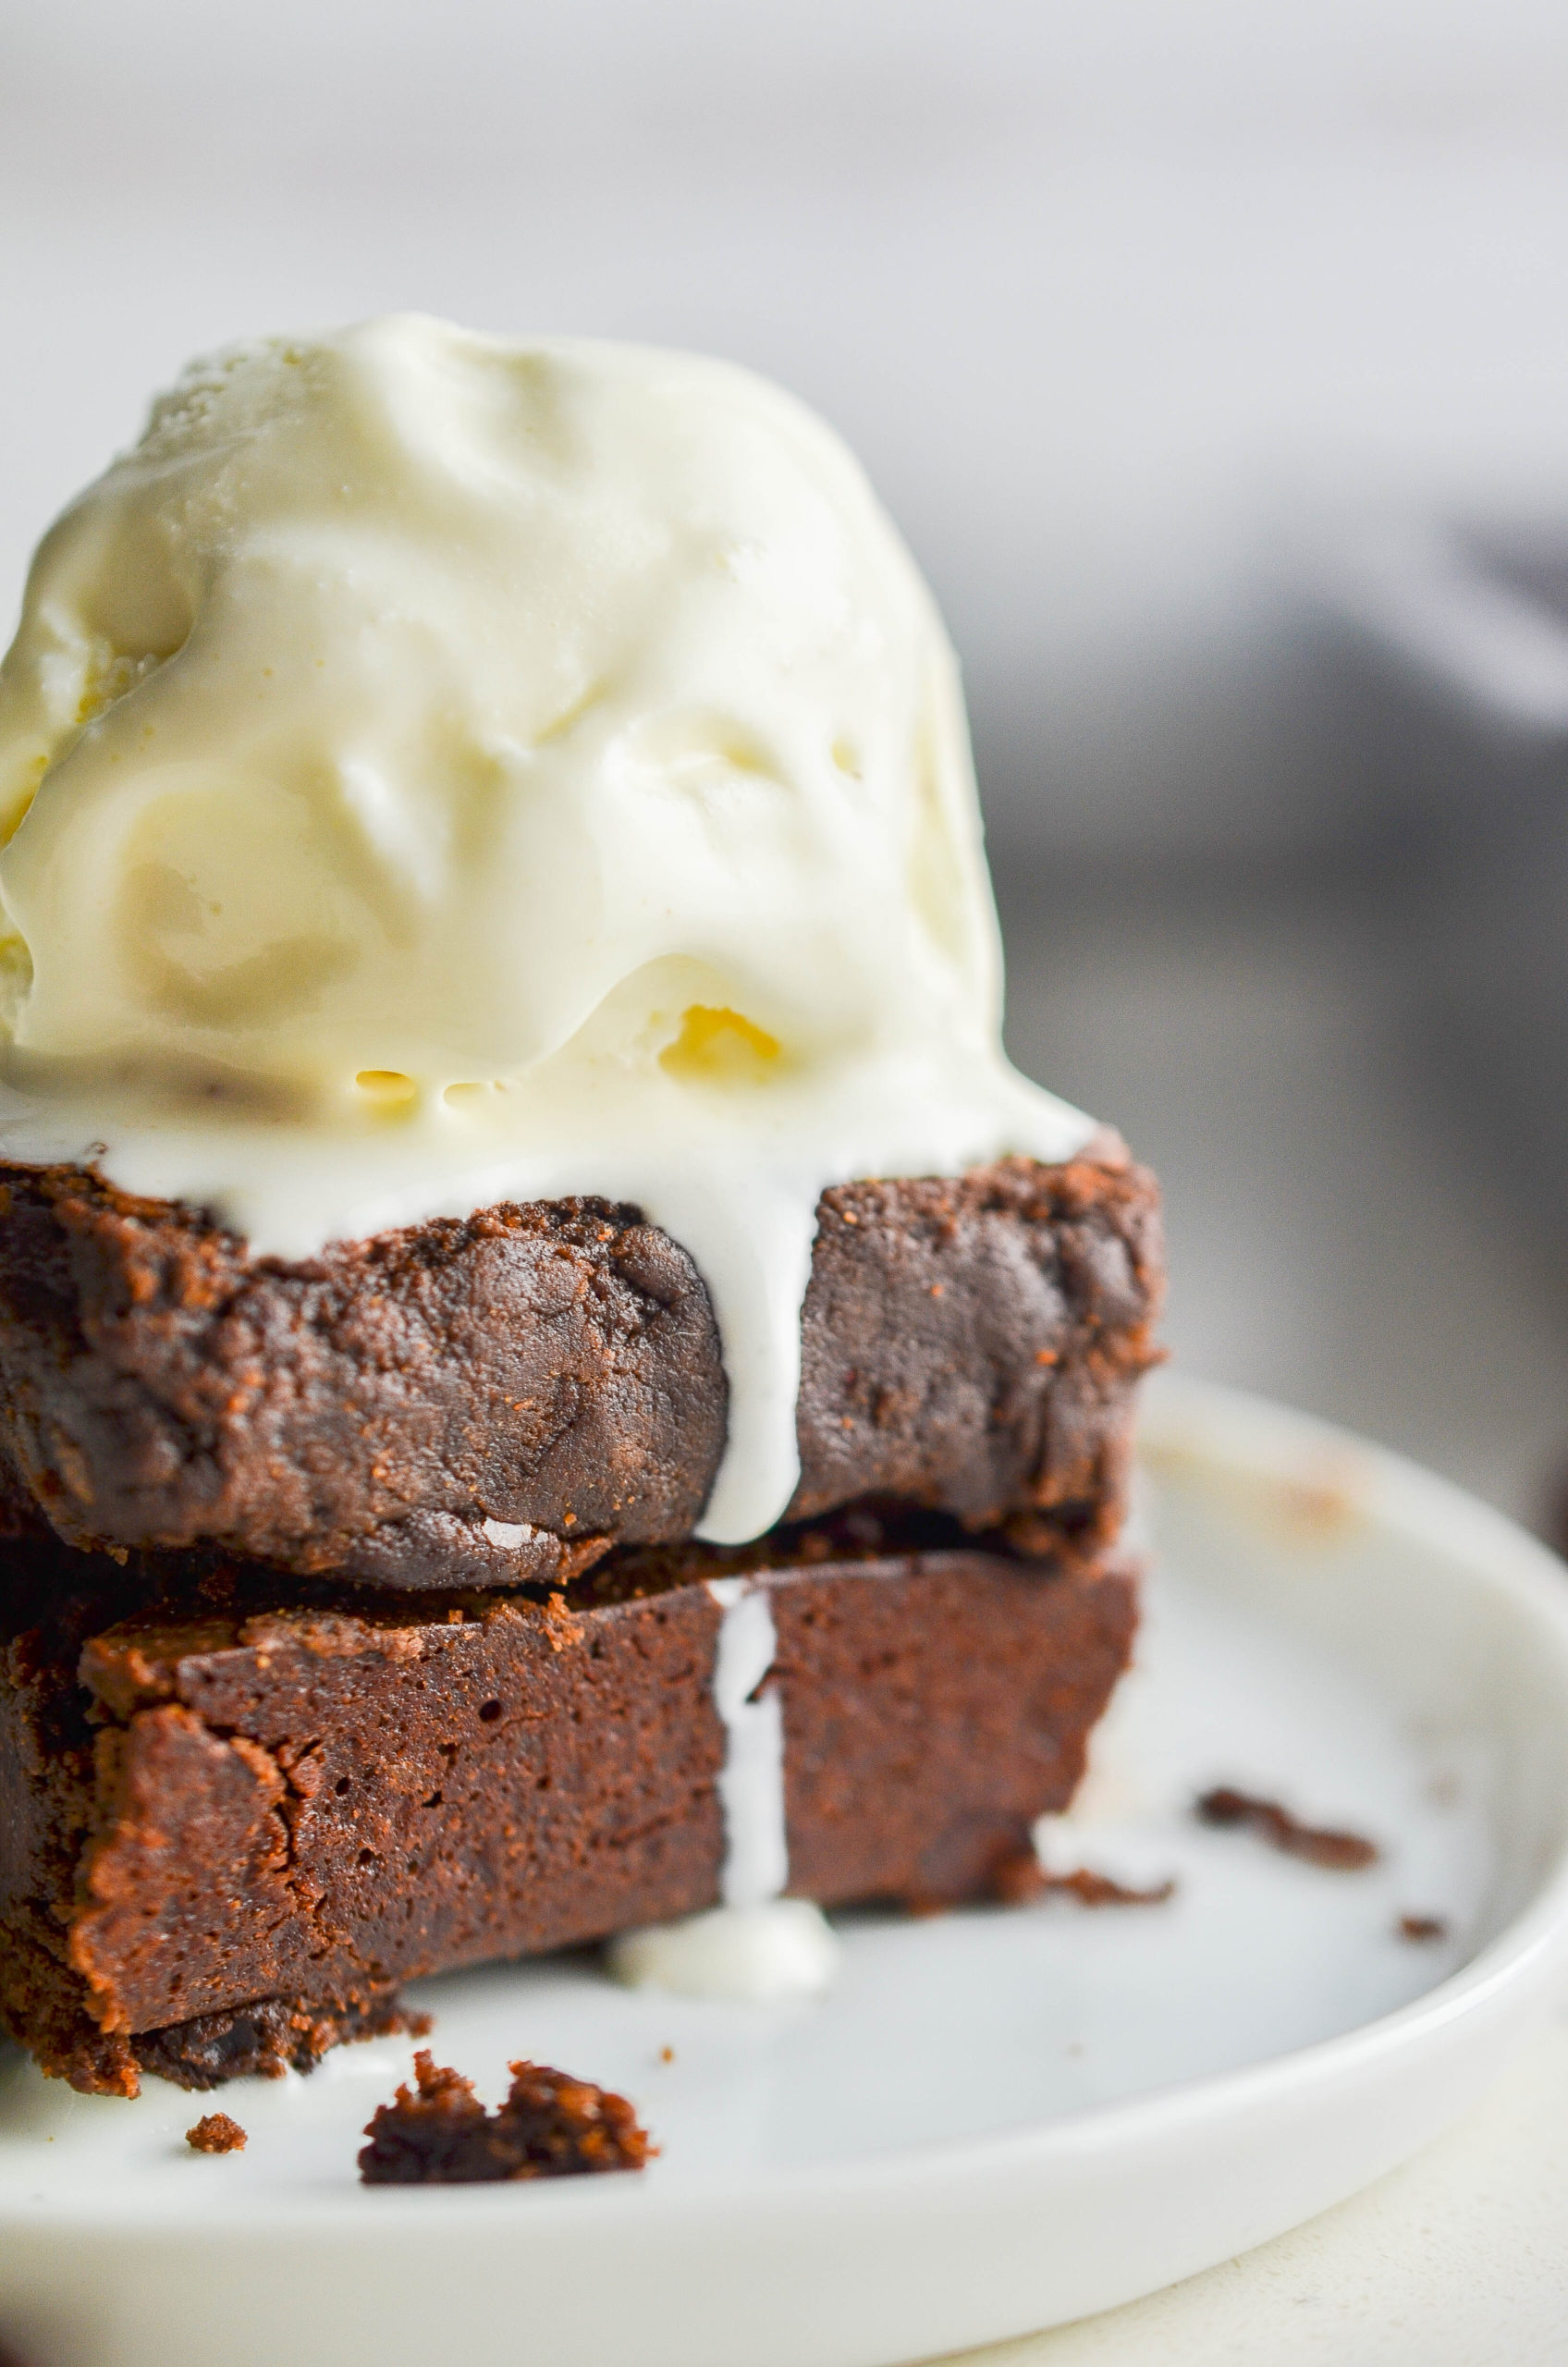 Brownies with ice cream on top.